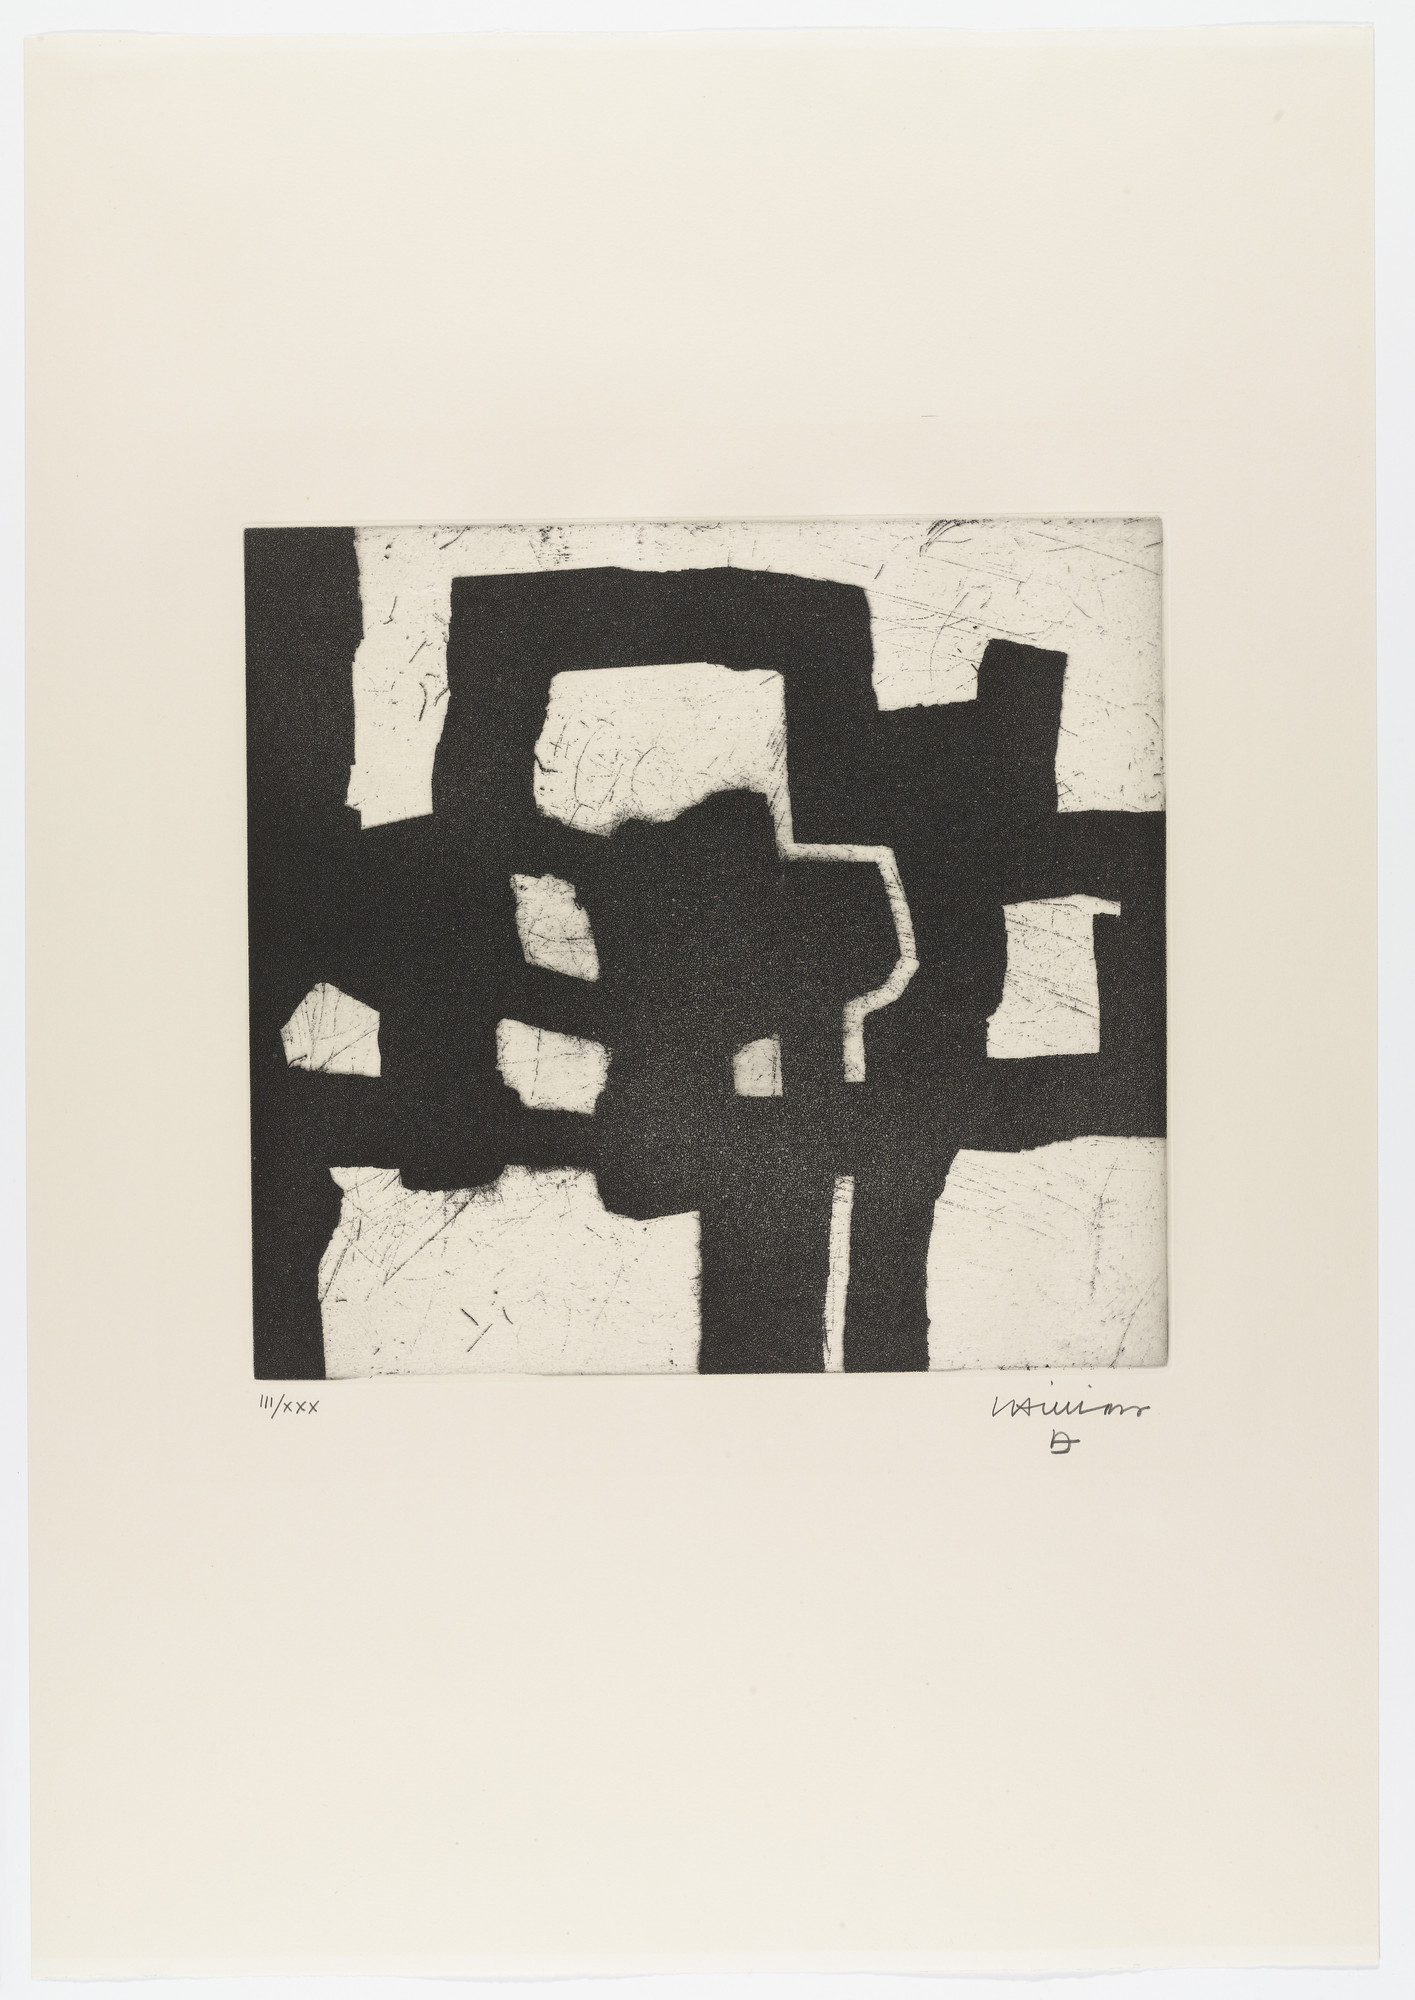 Eduardo Chillida. Untitled from Homage to Picasso (Hommage à Picasso). 1973